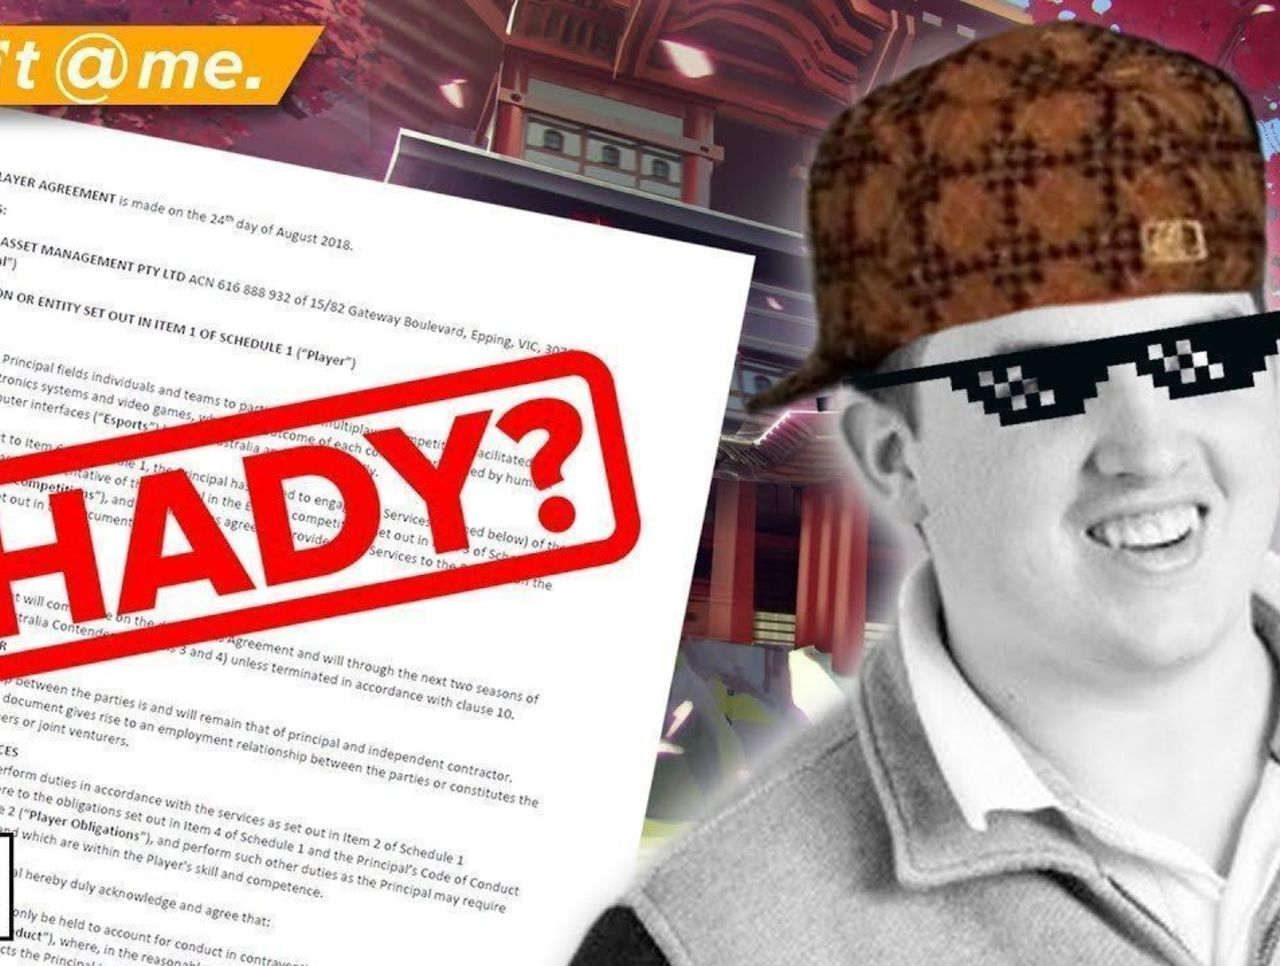 This Might be the Shadiest Contract in Esports